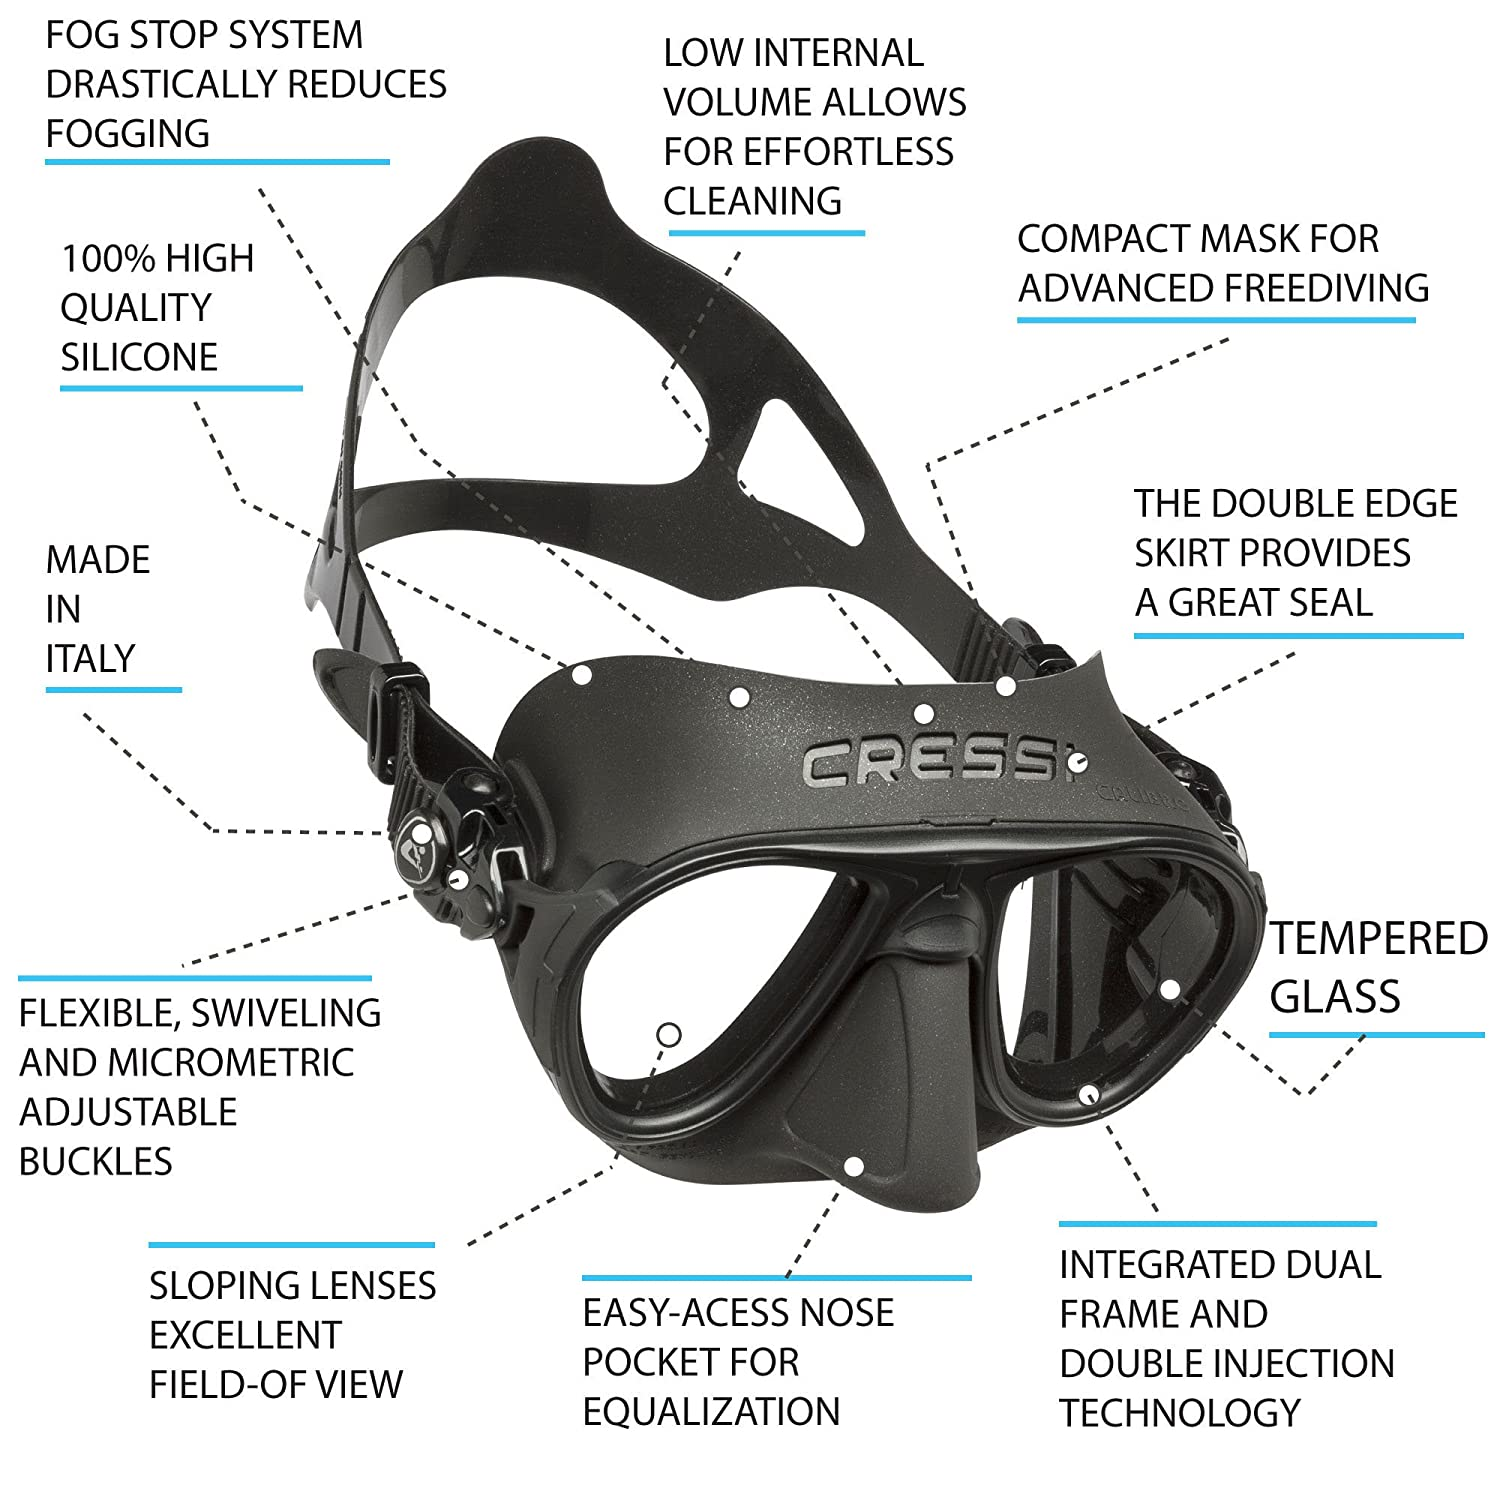 e3dd6134af7 Cressi Calibro FOG STOP SYSTEM - Professional Diving   Snorkeling Mask   Amazon.co.uk  Sports   Outdoors